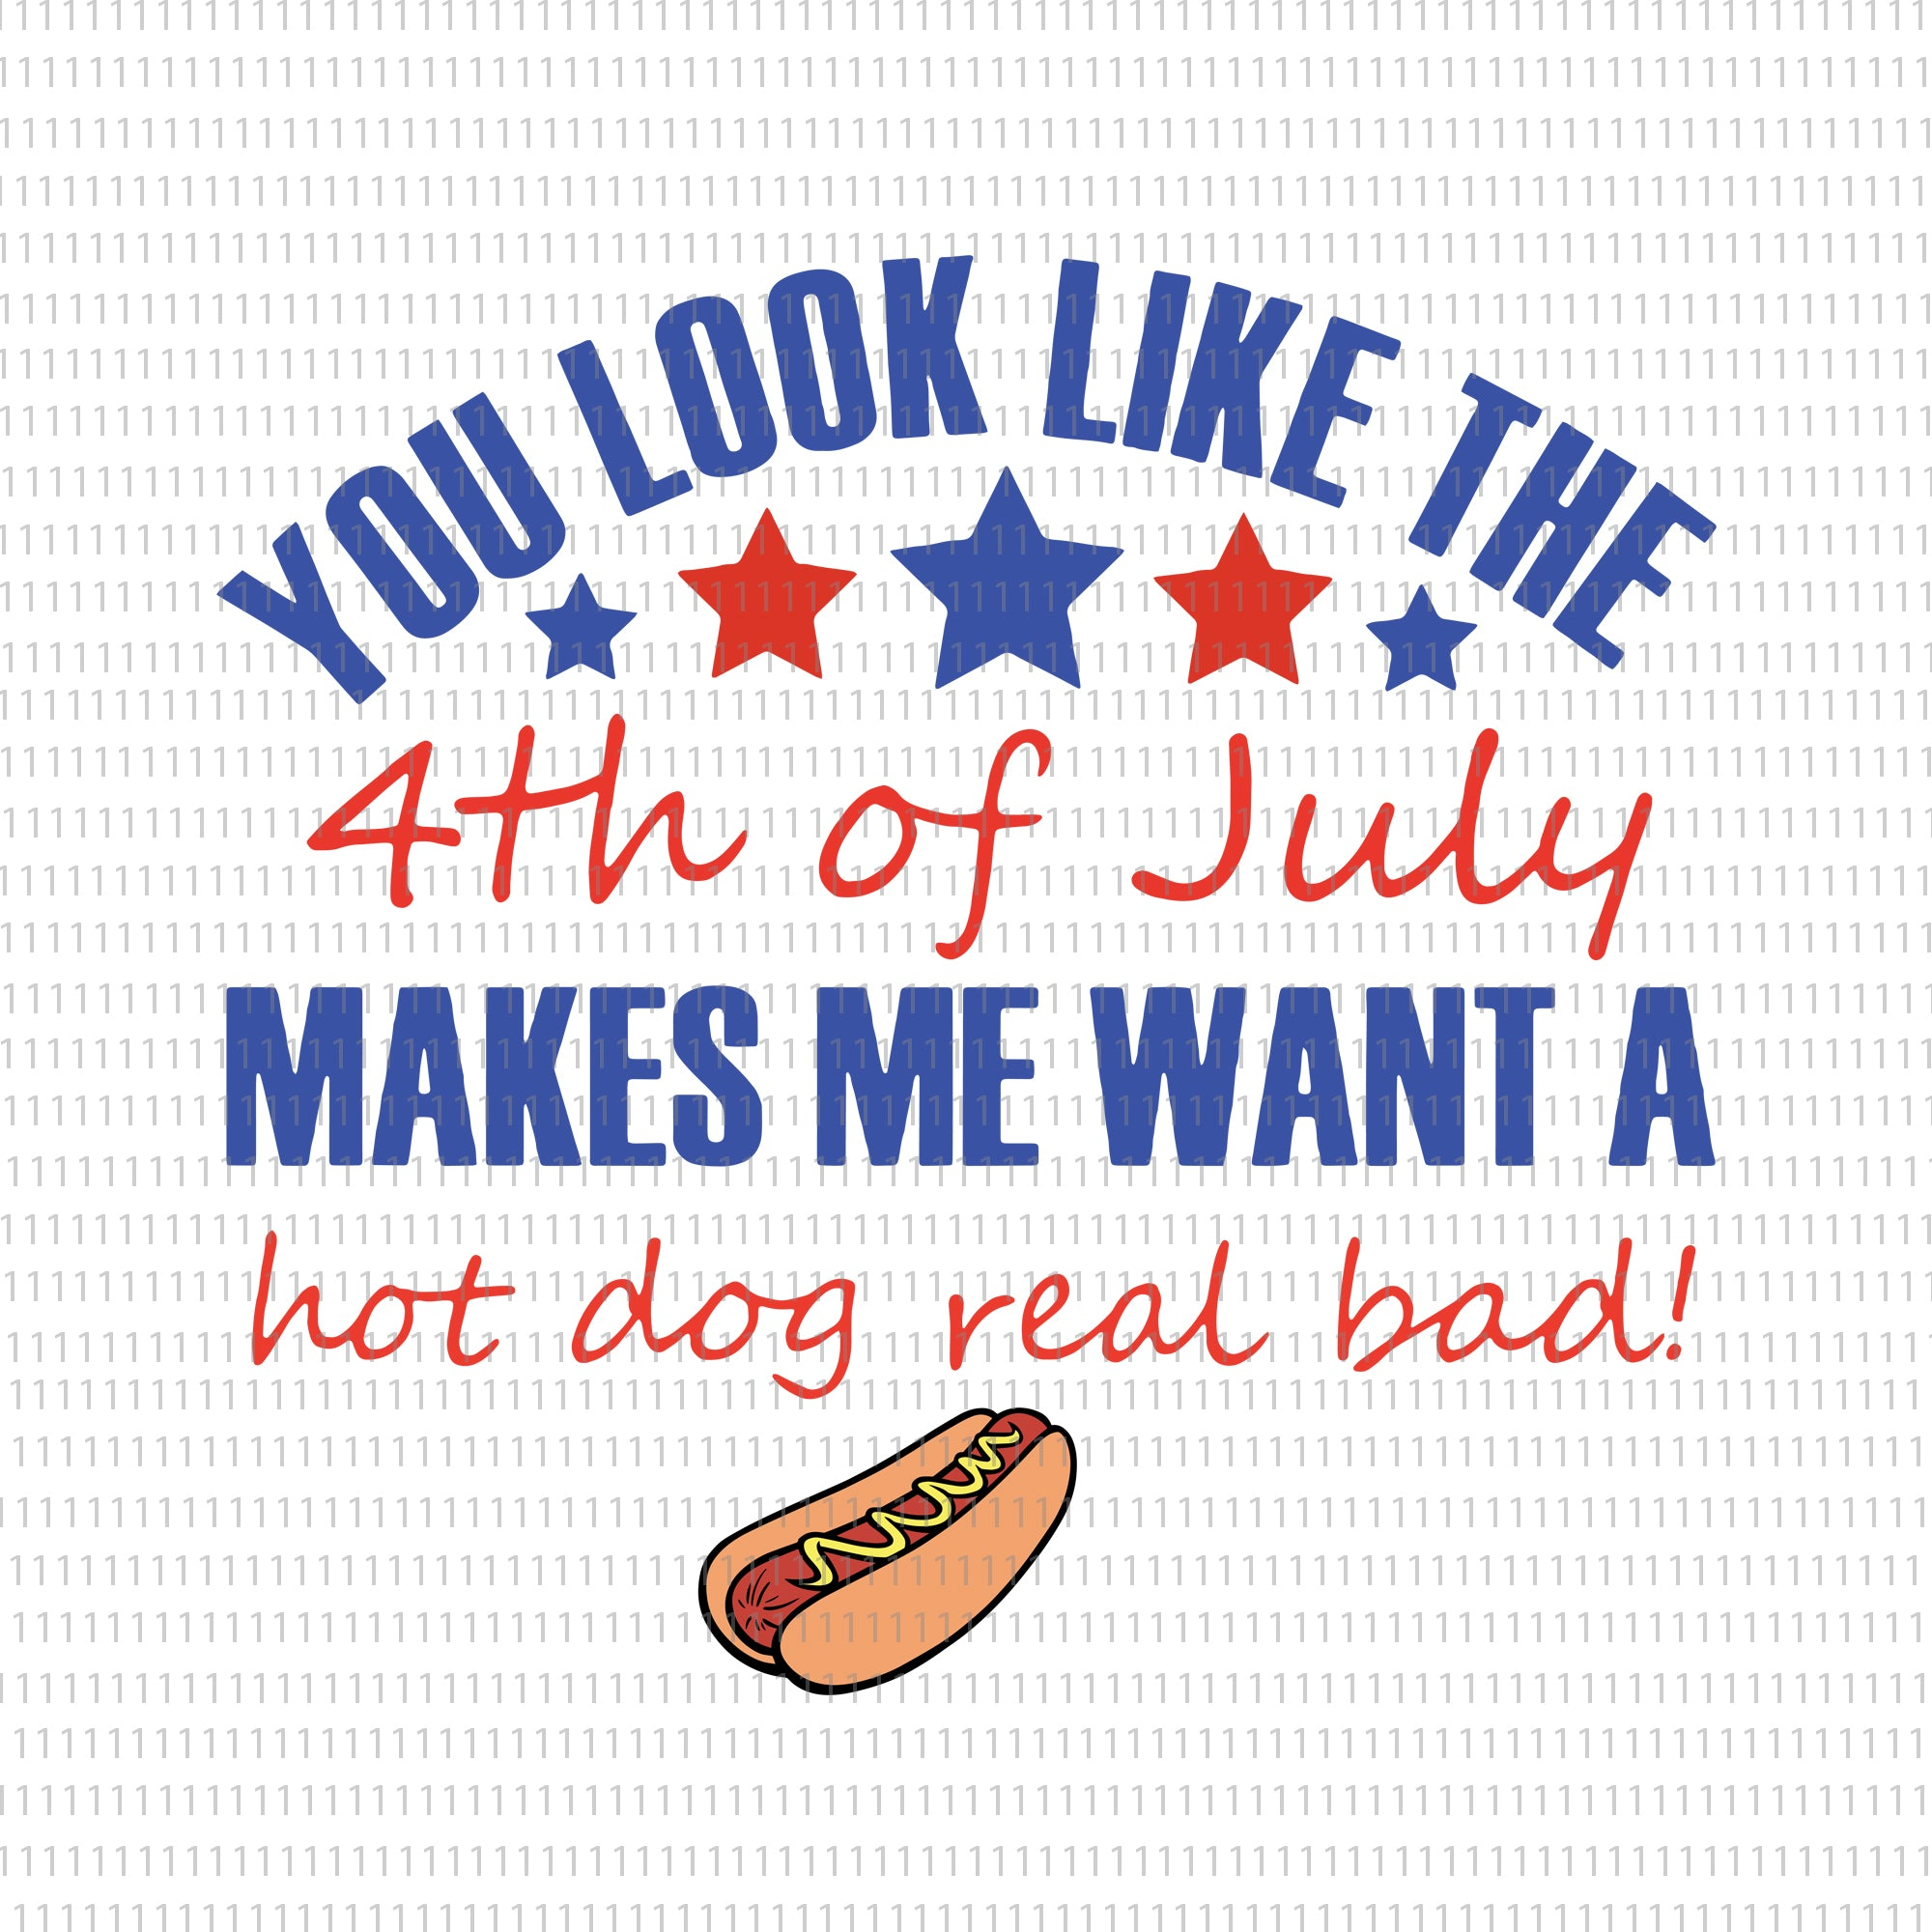 You look like the 4th of July makes me want a hot dog real bad svg, You look like the 4th of July makes me want a hot dog real bad, 4th of July svg, 4th of July, 4th of July vector,